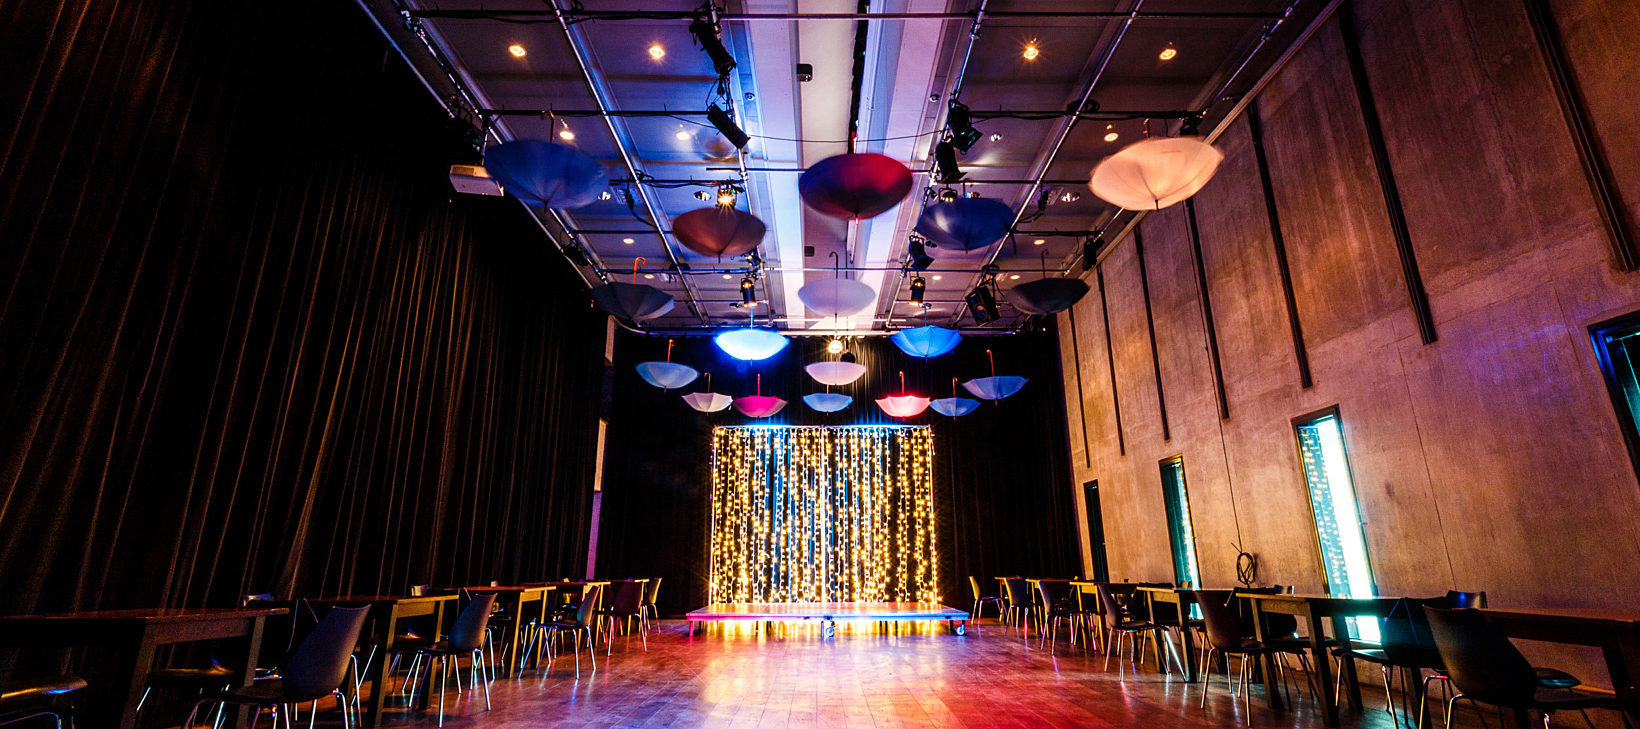 A large room is dimly lit with chairs and tables on either side of the floor, multi coloured umbrellas hanging from the ceiling and a glittery platform stage is at the end of the room.